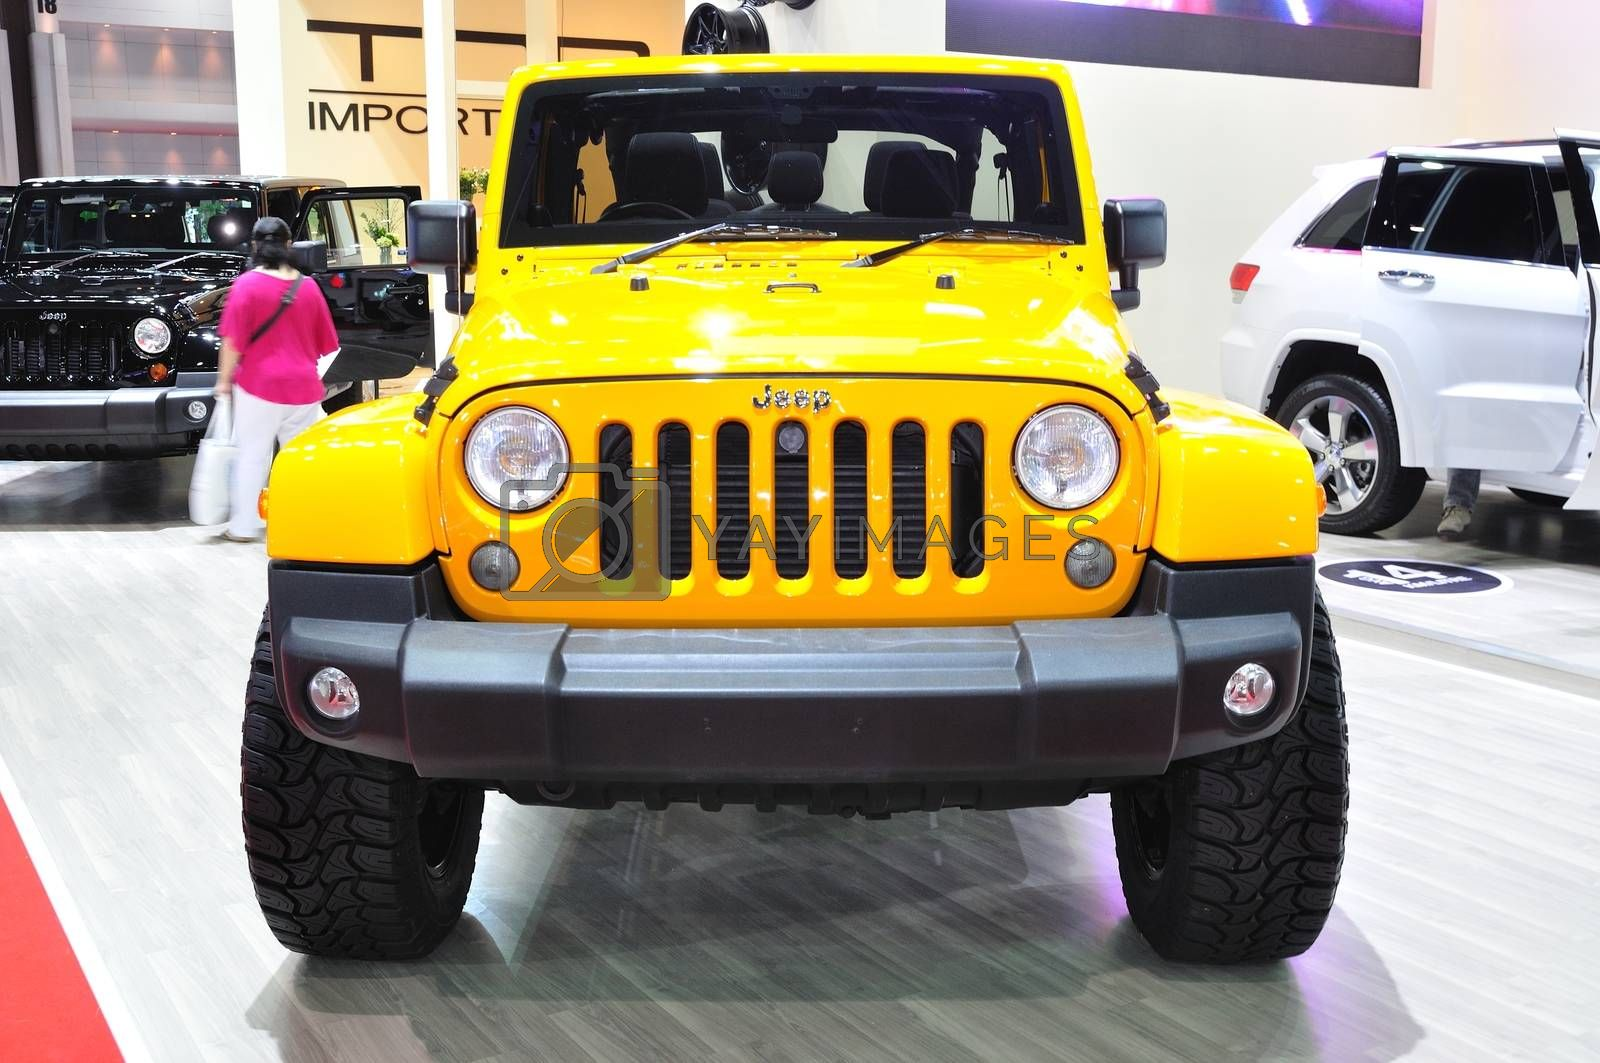 NONTHABURI - March 25: New Jeep Wrangler Sahara on display at Th by thampapon